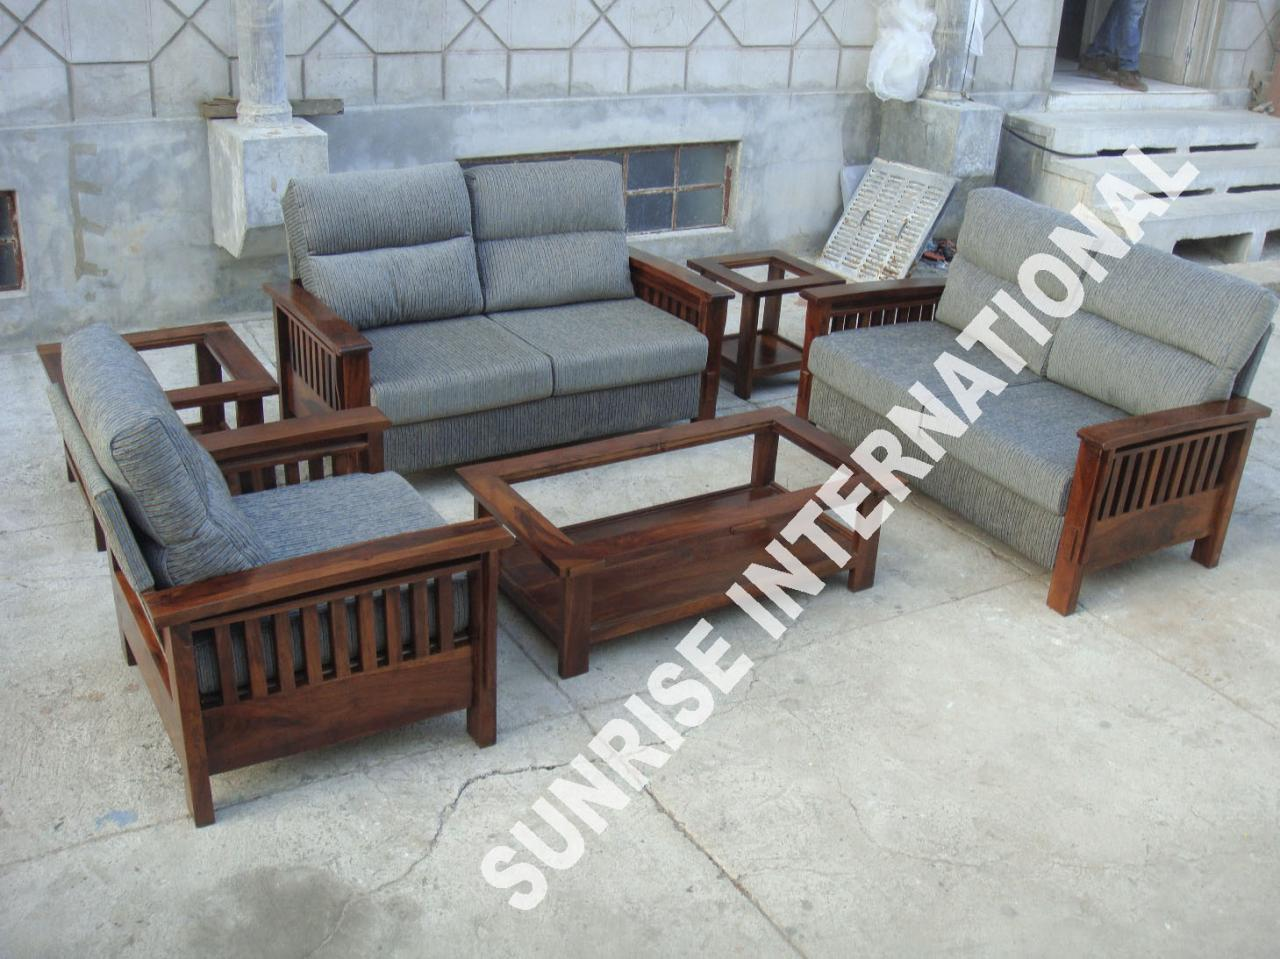 Wood Sofa Sets ~ Sunrise international wooden sofa sets l shade set